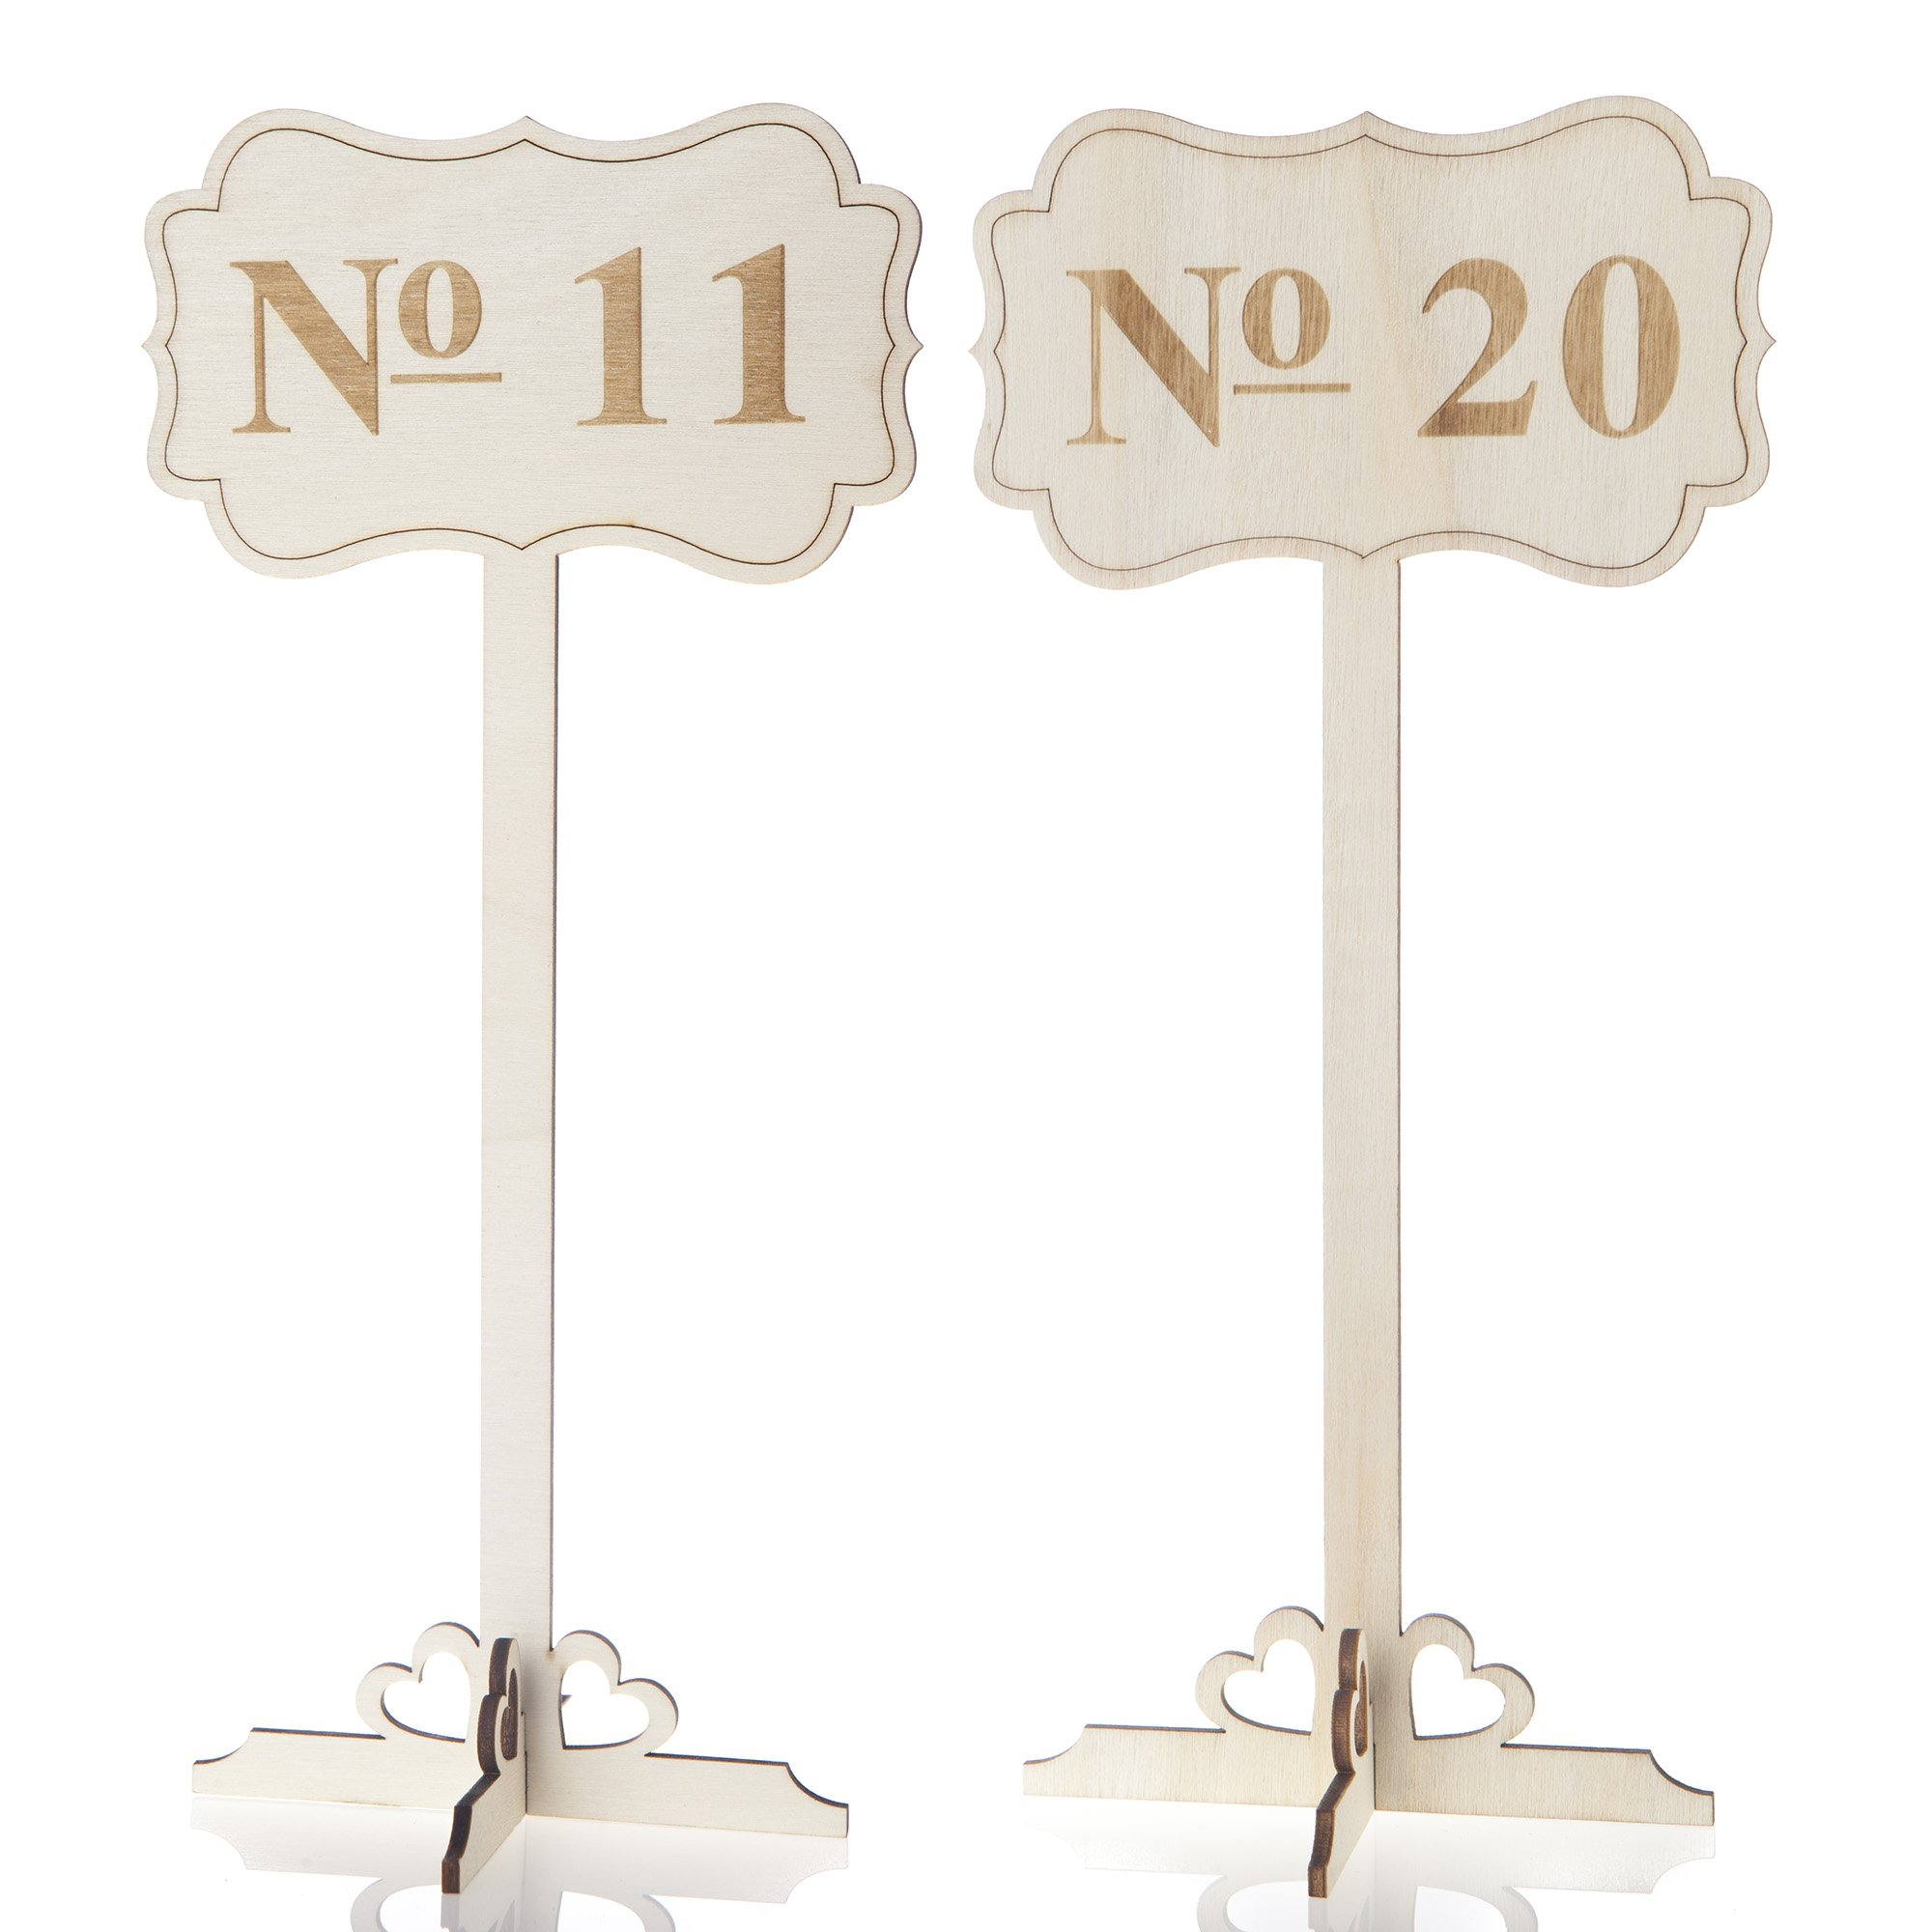 Ella Celebration Wooden Wedding Table Numbers 11-20, Tall Rustic Wood Number Holders Stands (Numbers 11-20)